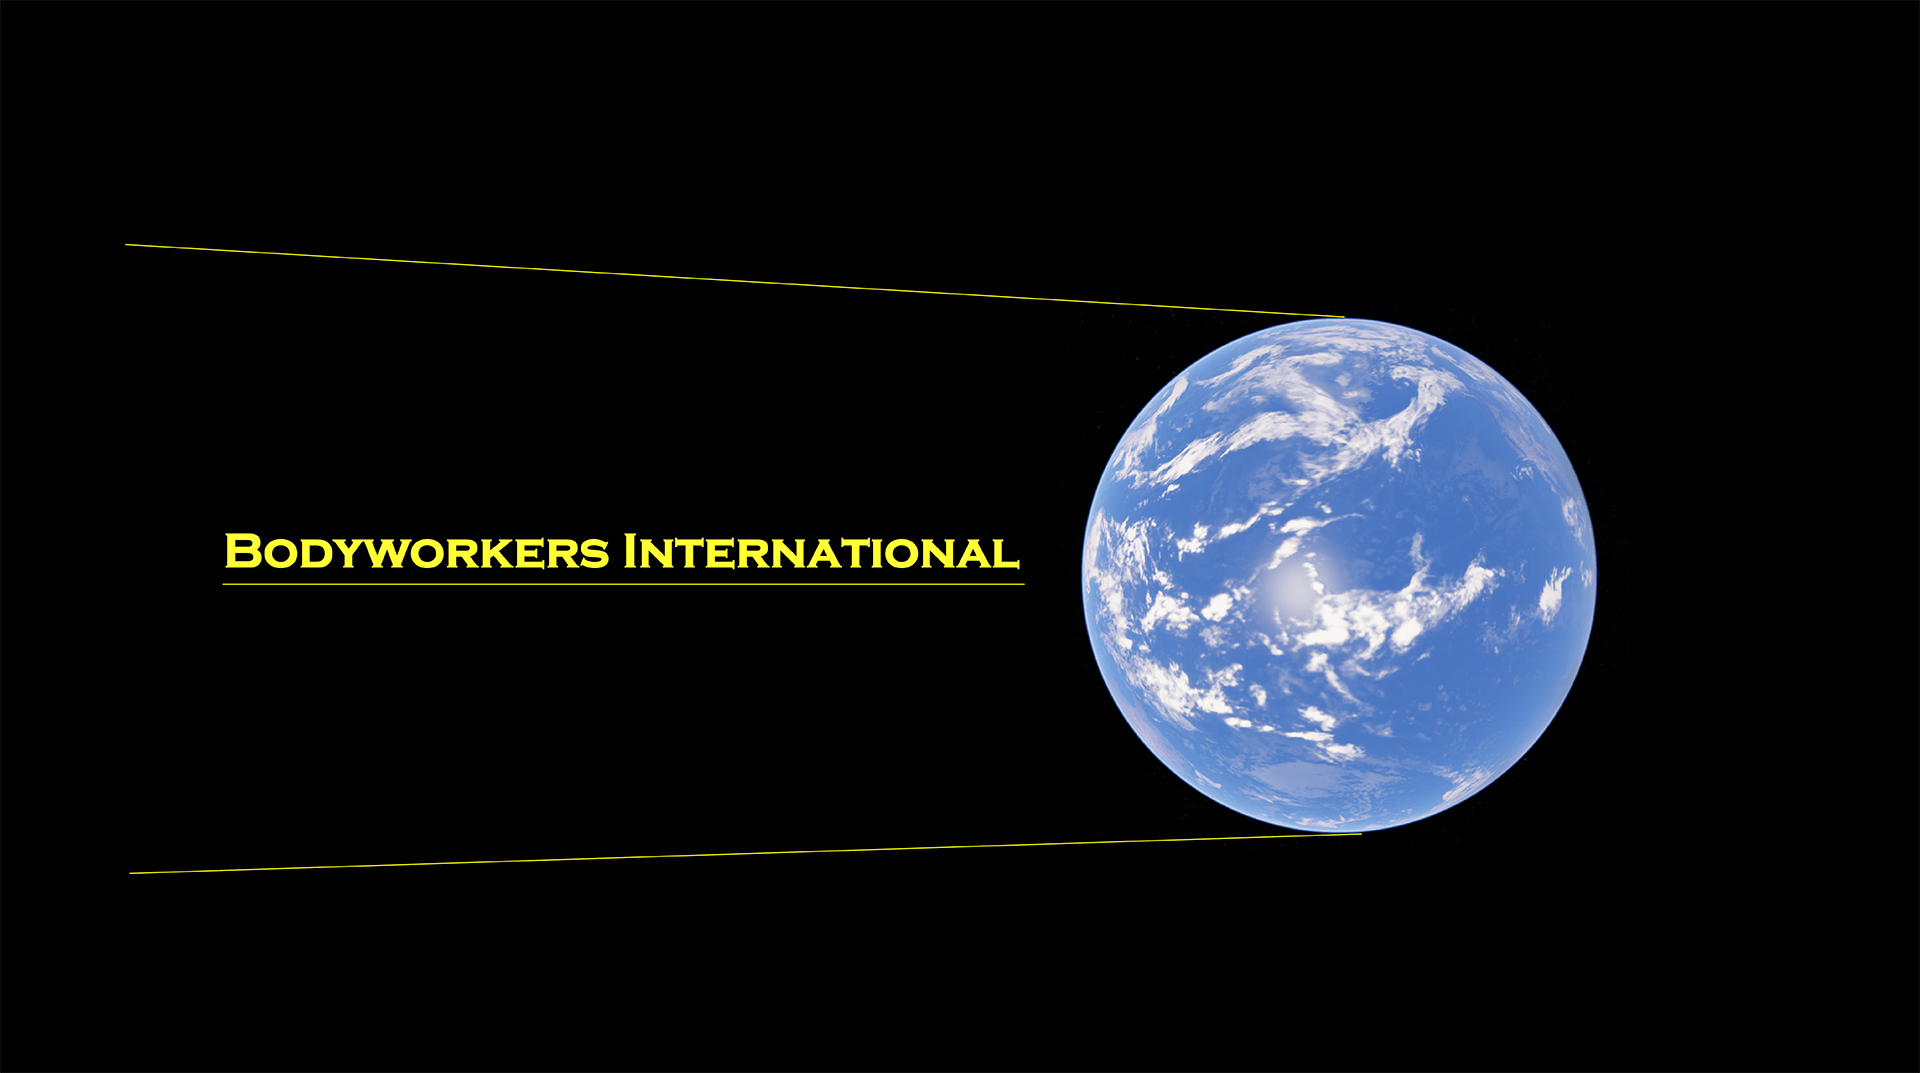 Bodyworkers International